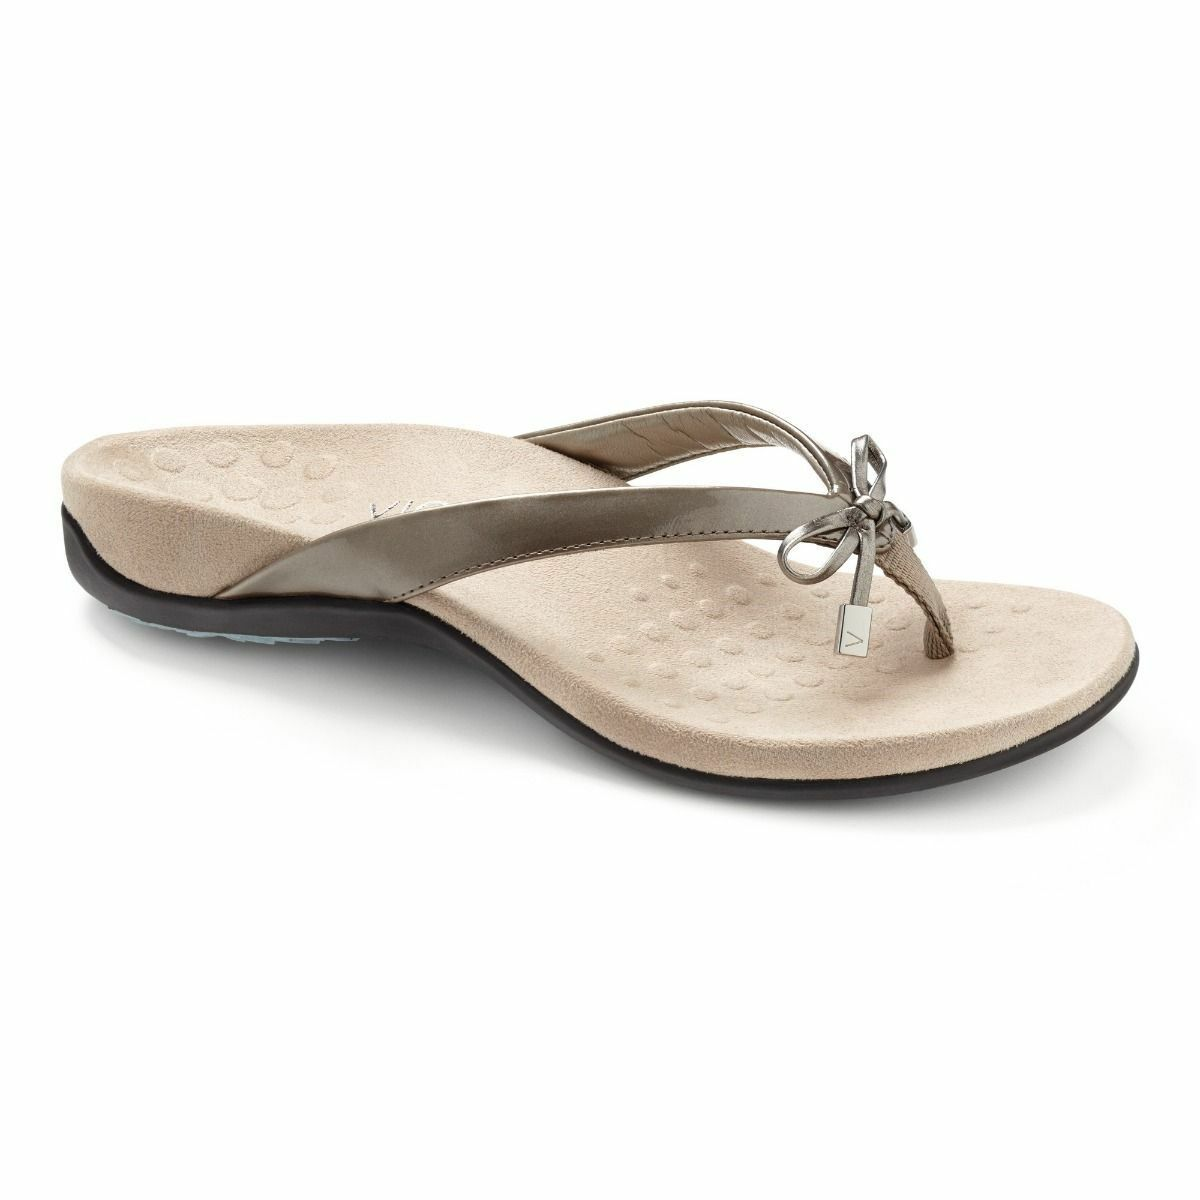 Vionic Orthotic Rest Bella Casual Thongs Sandals - Pewter